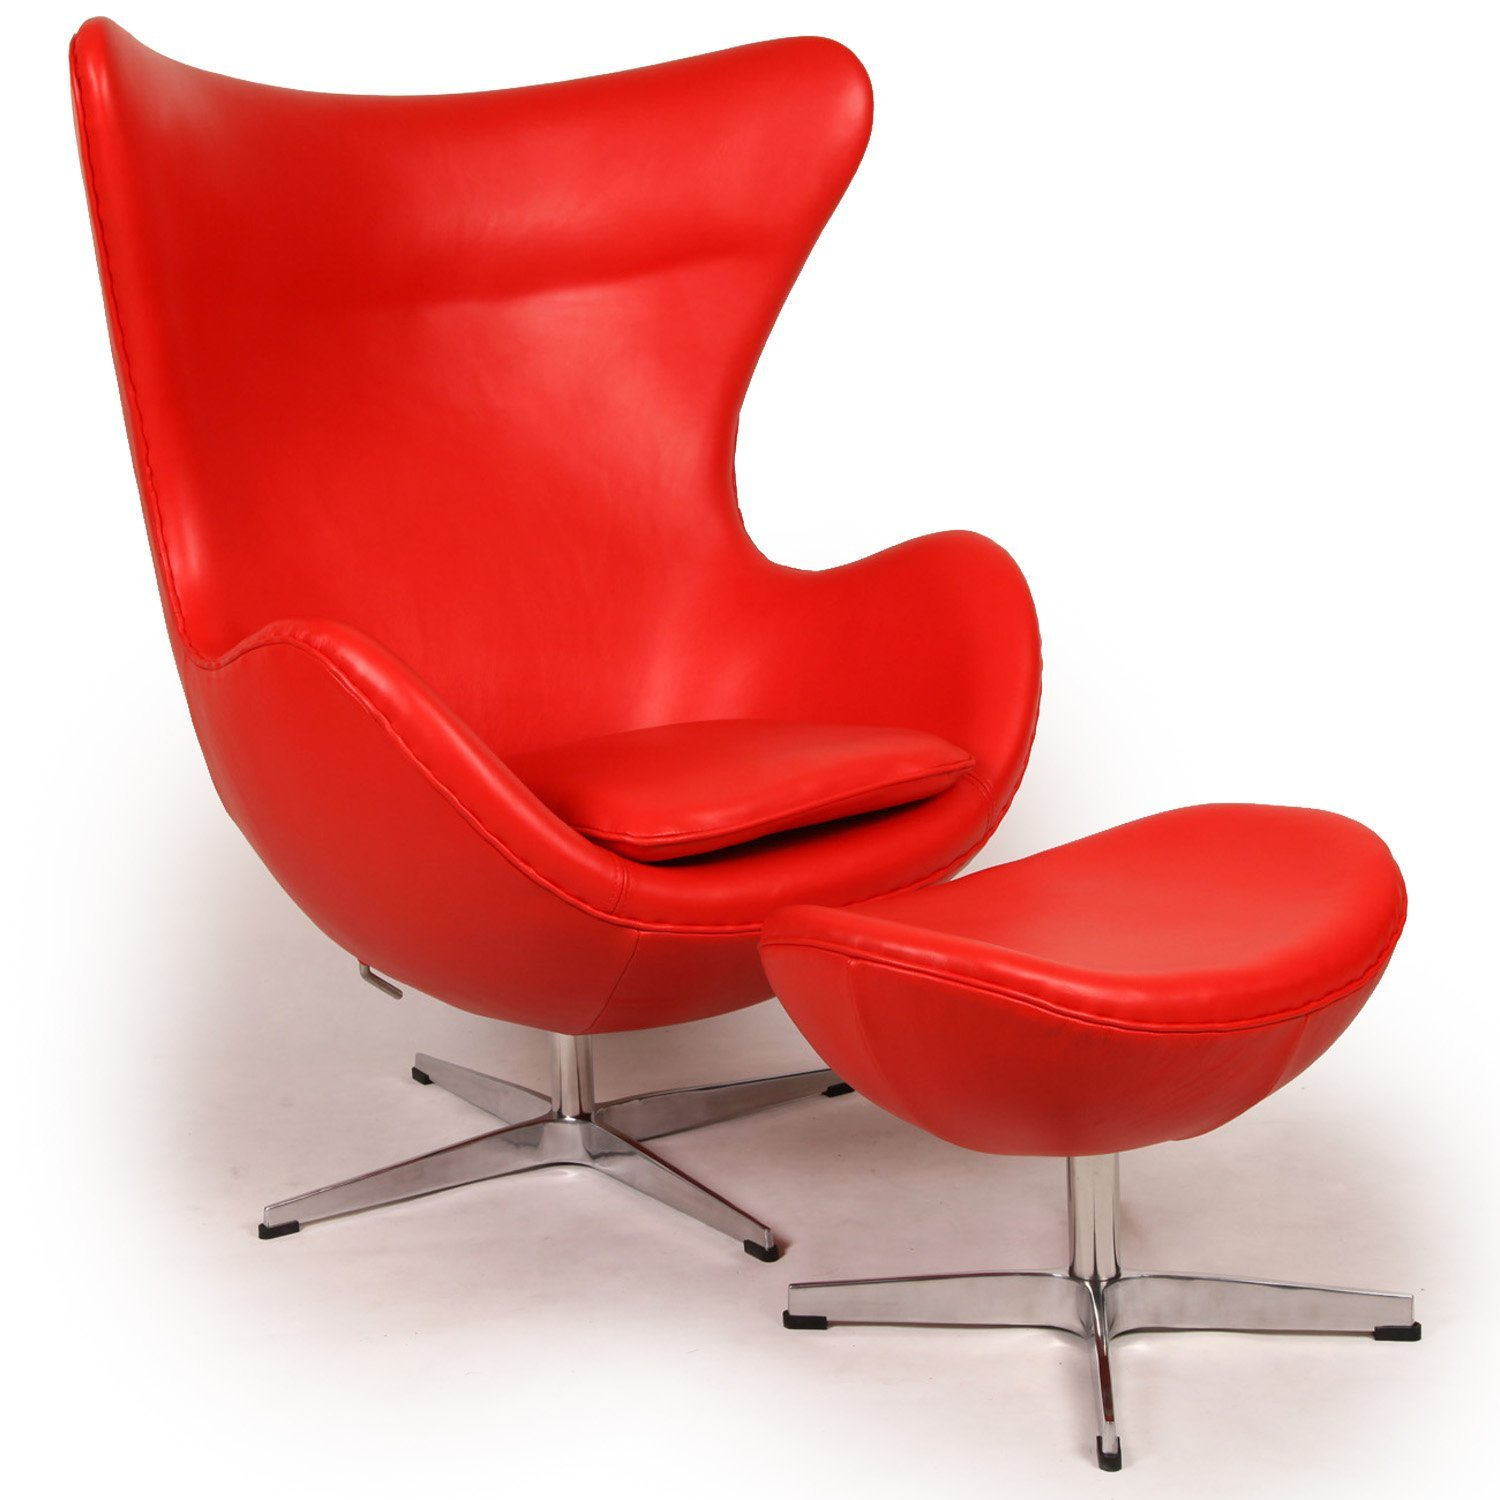 Cool Egg Chairs Mid Century Modern Swivel Chairs